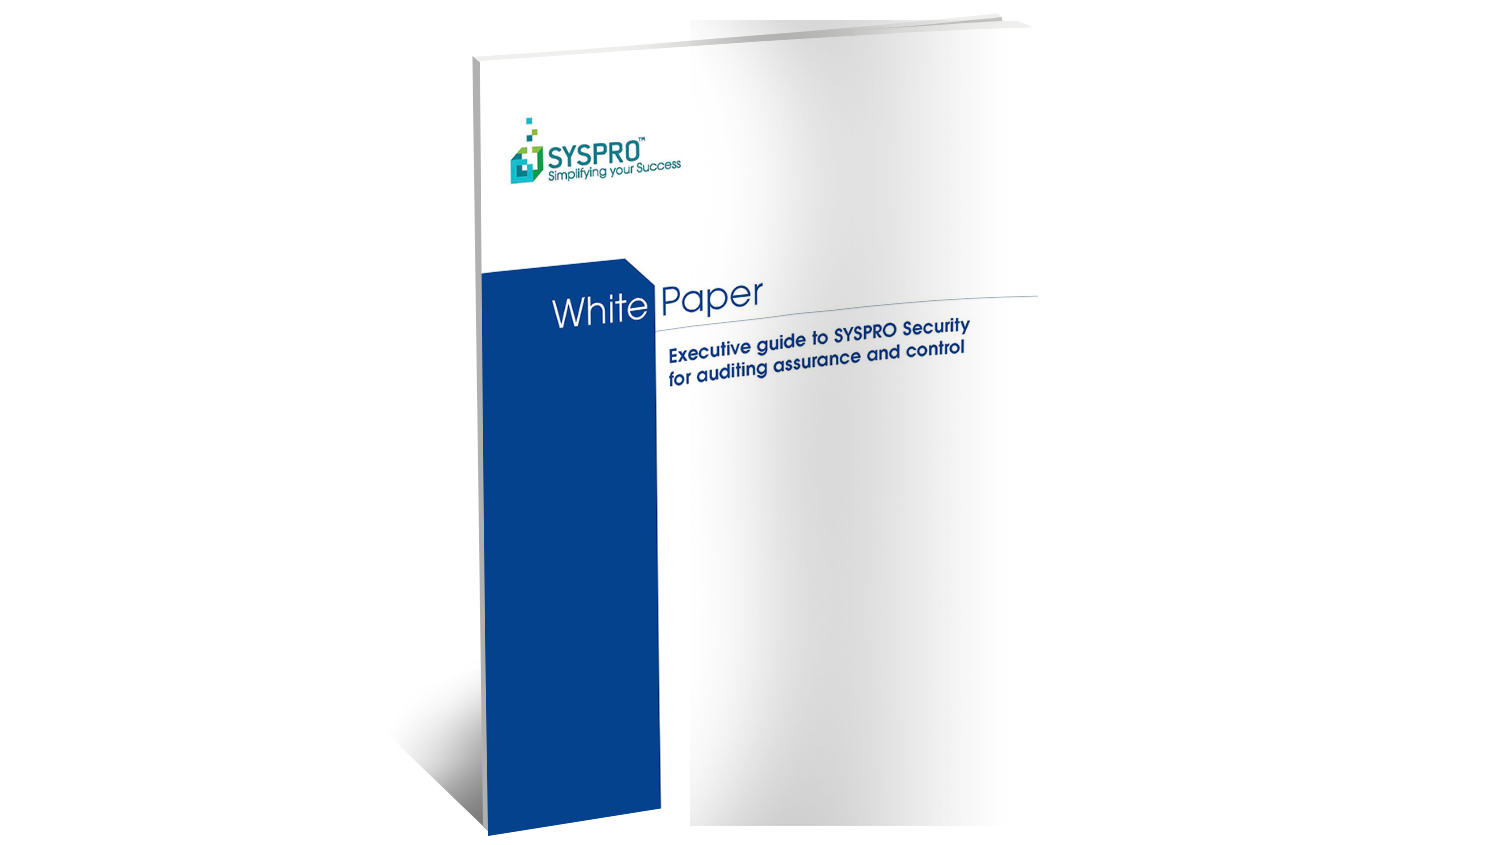 SYSPRO Security for Auditing Assurance and Control White Paper